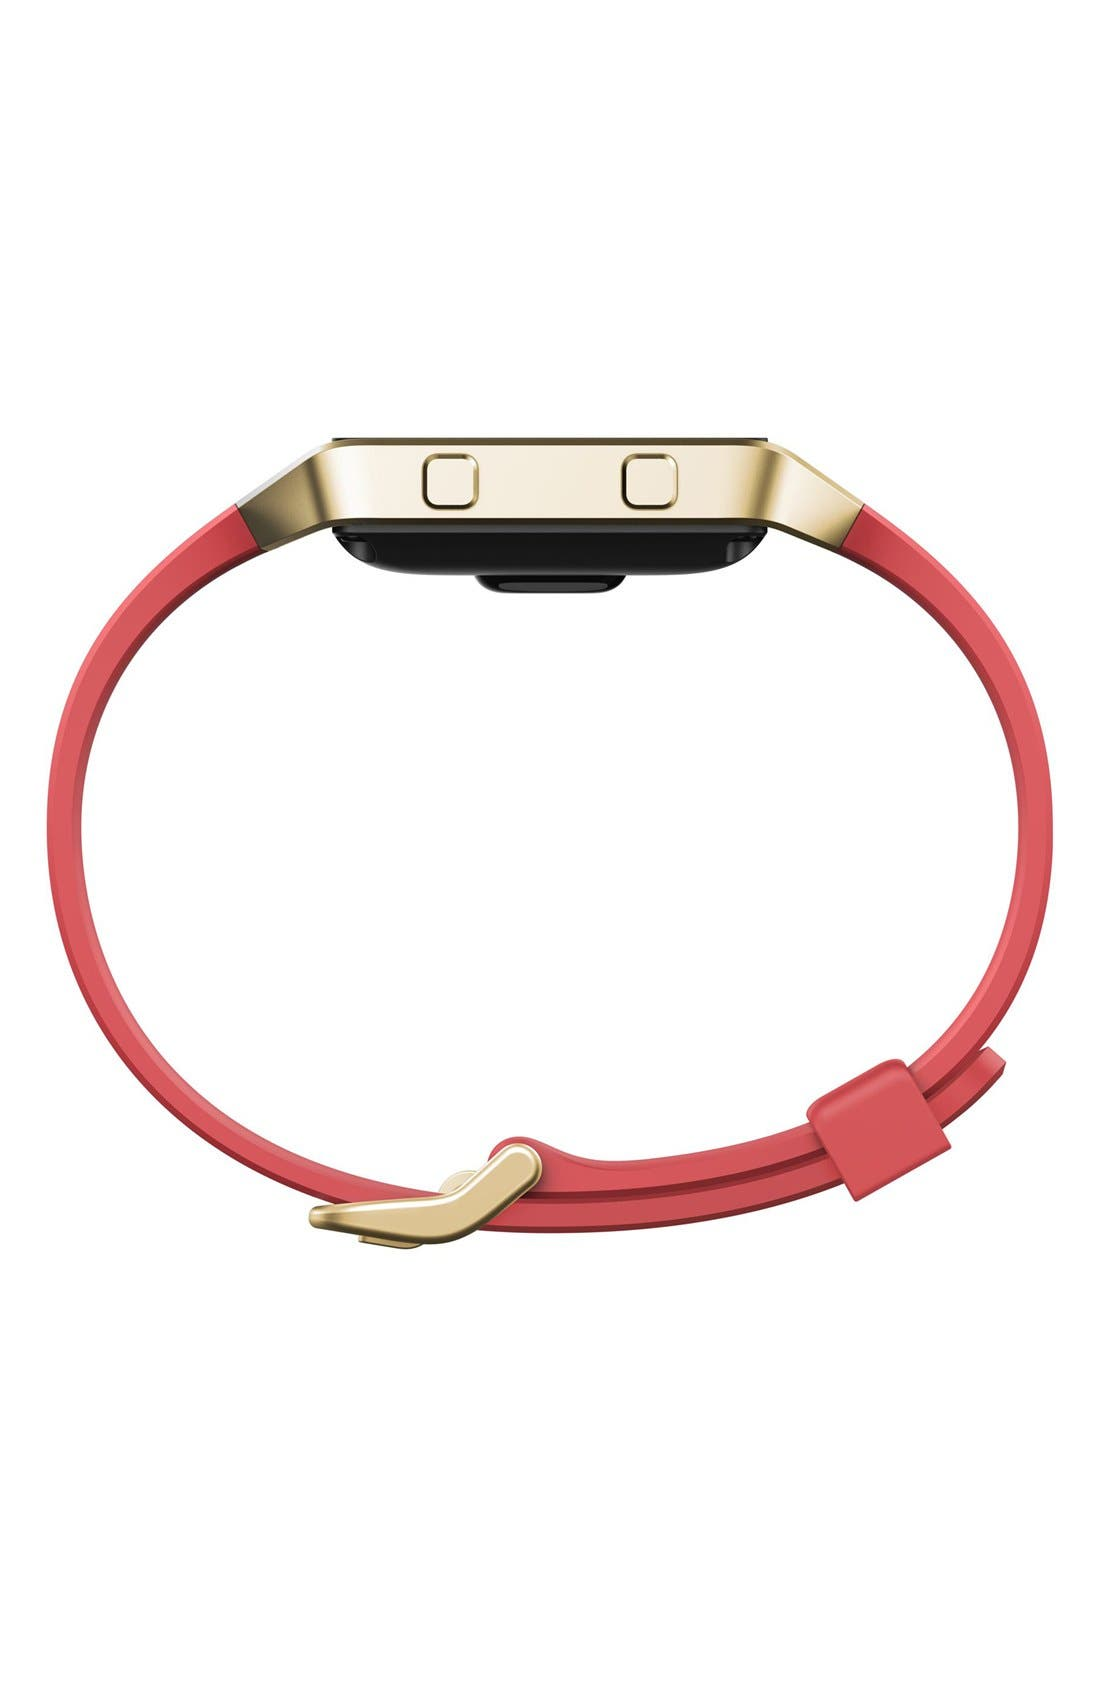 'Blaze' Slim Accessory Band & Frame,                             Alternate thumbnail 4, color,                             Pink